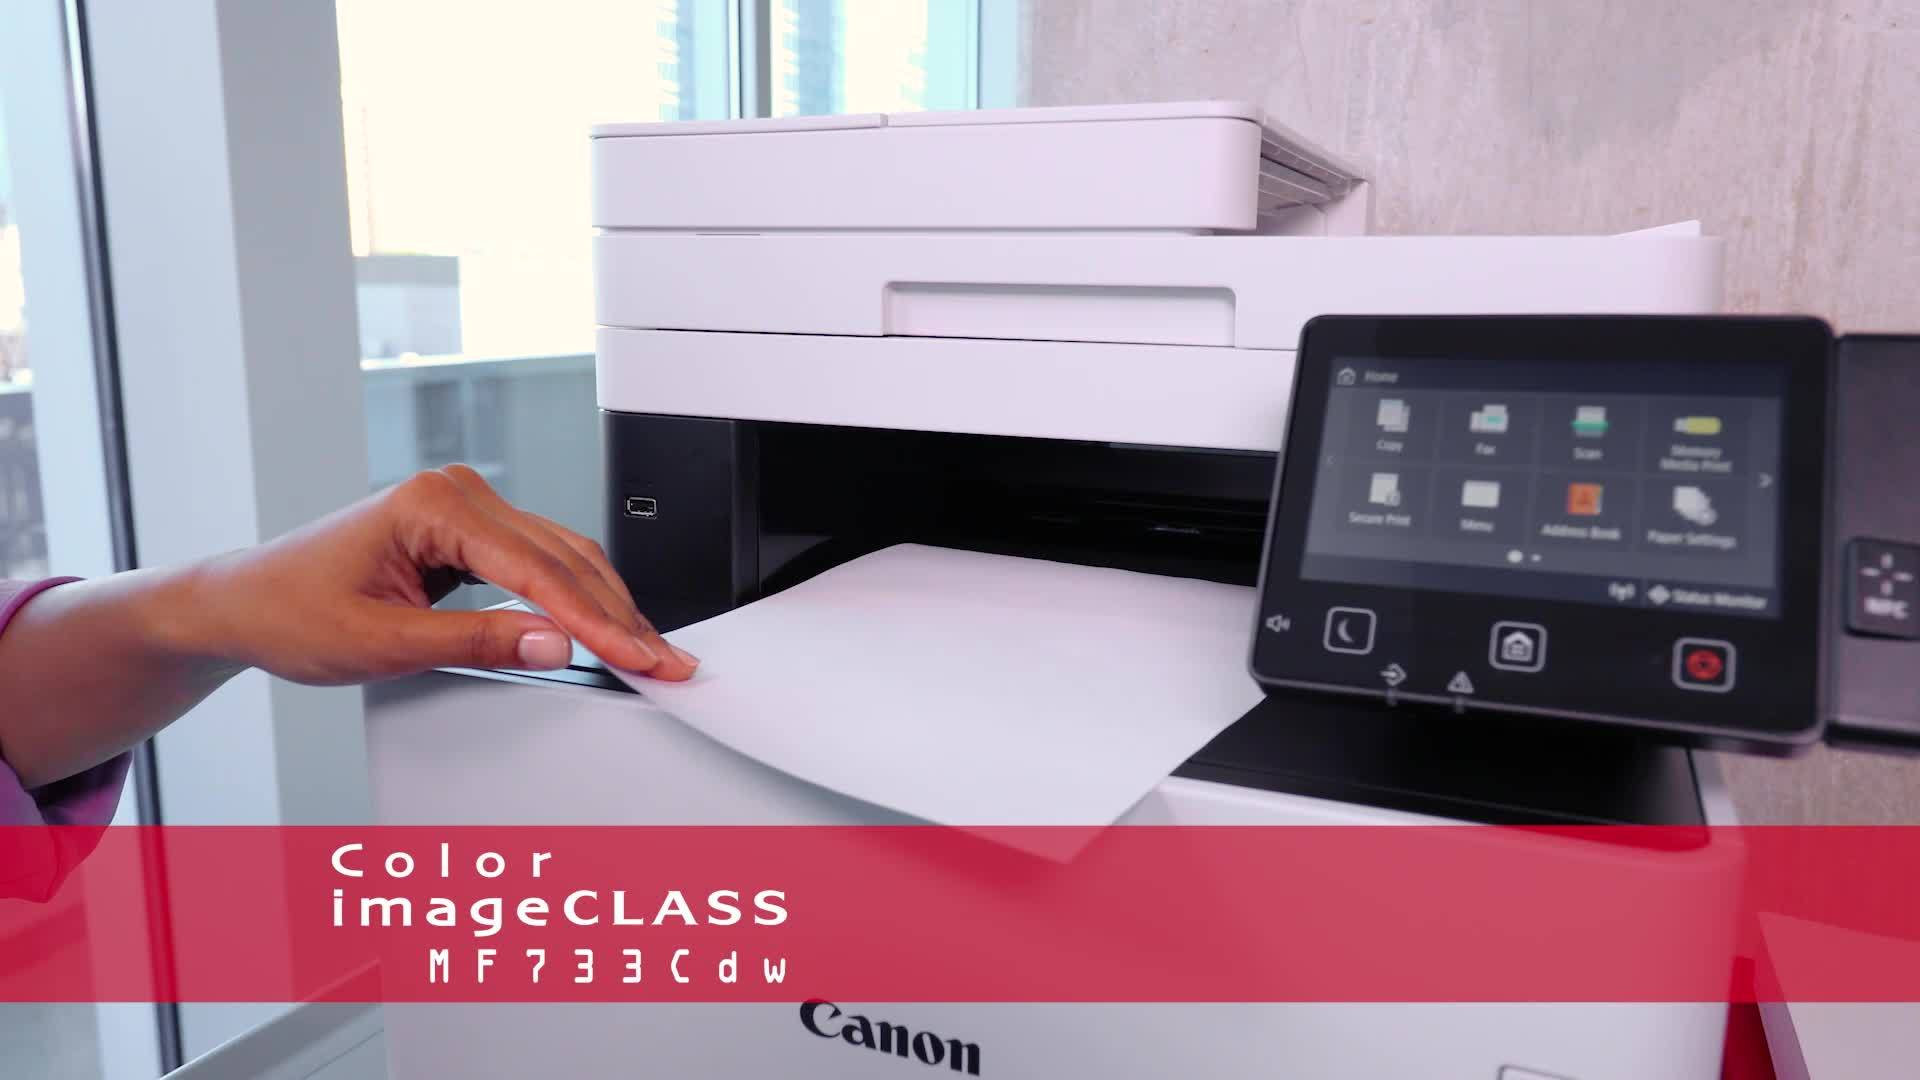 Canon imageCLASS MF733Cdw 1474C009 USB, Wireless, Network Ready Color Laser  All-In-One Printer